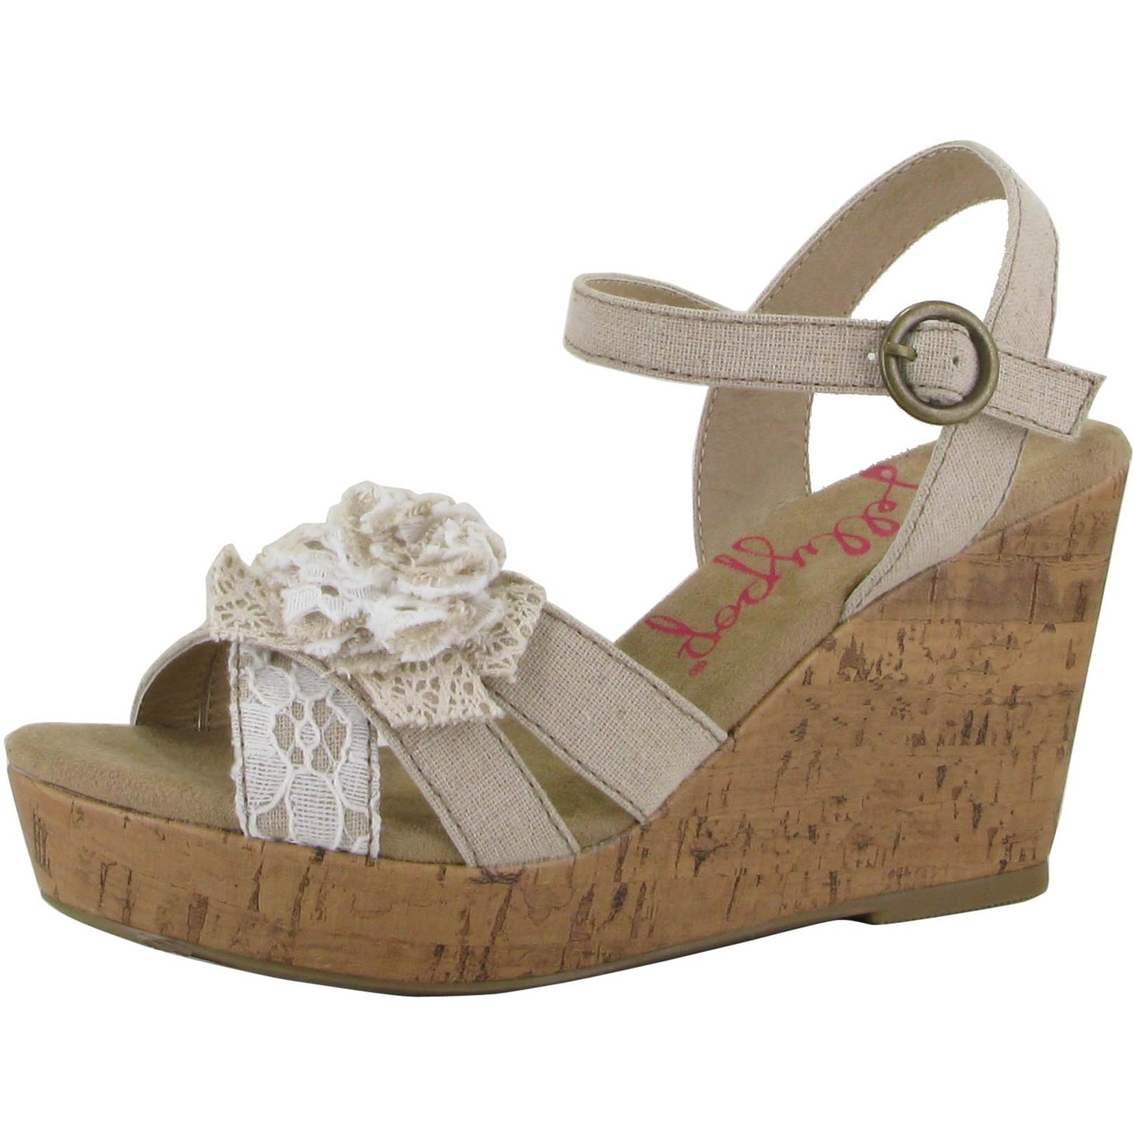 jellypop cheerful side bow quarter wedge sandals